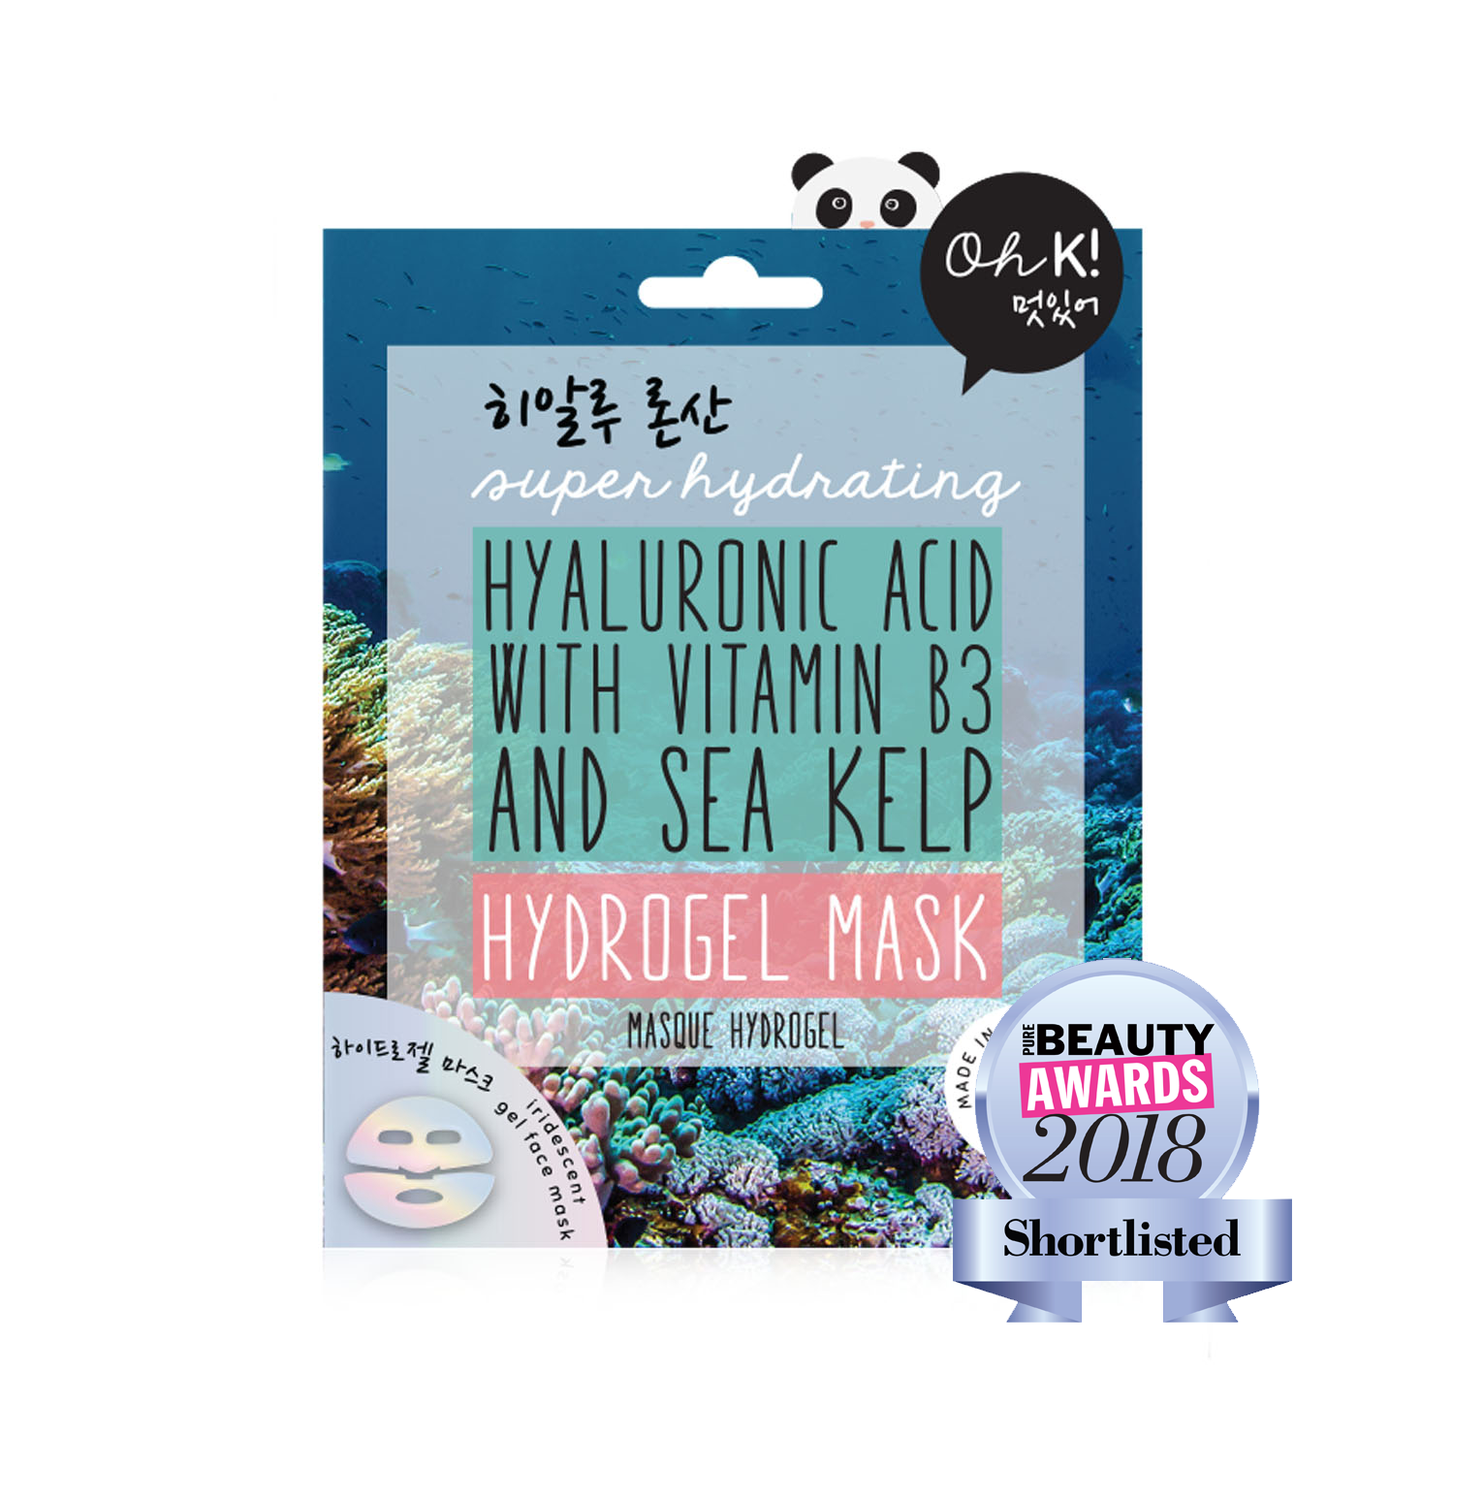 Oh K! Marine Hyaluronic Acid Mask